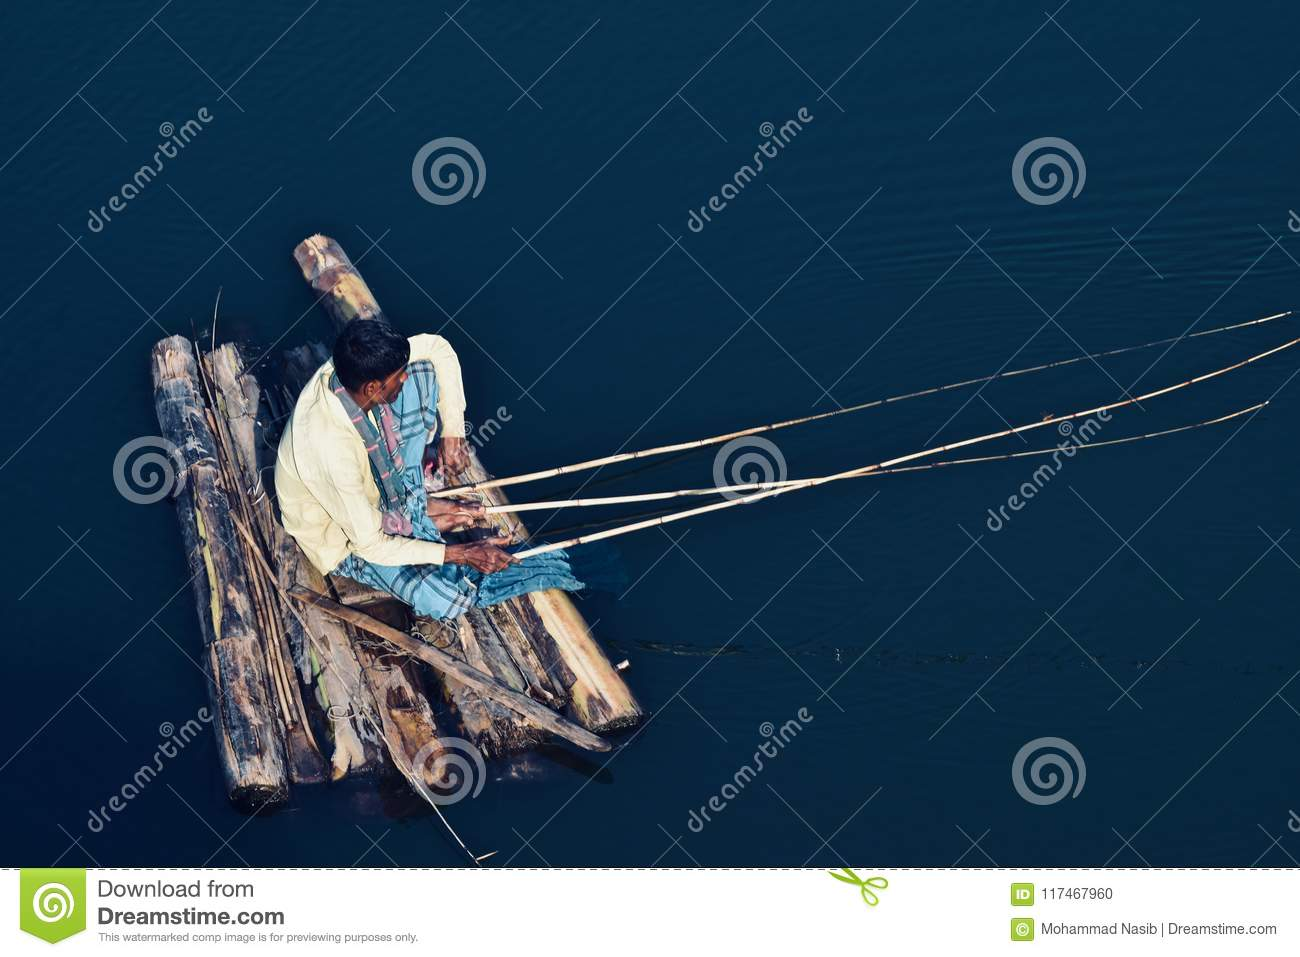 Download Man Sitting On A Place And Fishing In The Water Stock Photo - Image of weather, natural: 117467960